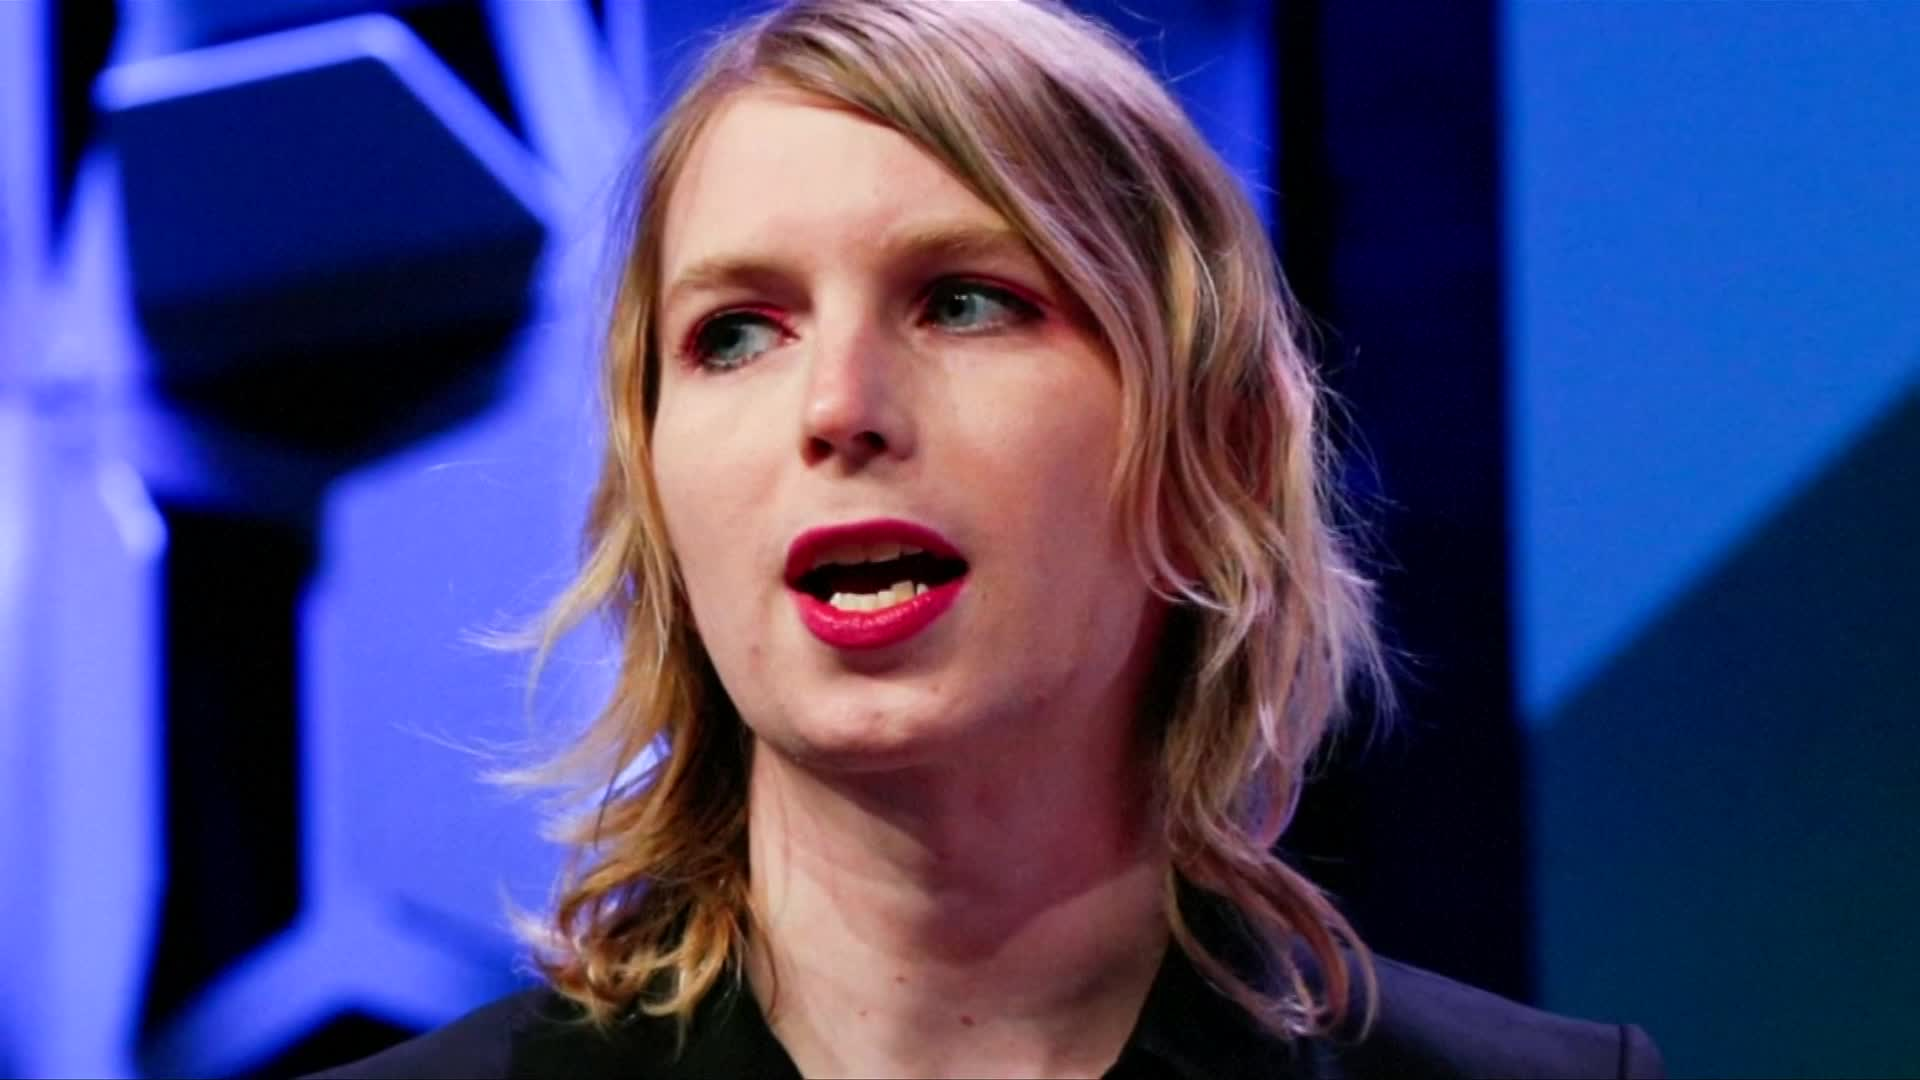 Support Group Calls Chelsea Manning's Solitary Confinement 'Torture'